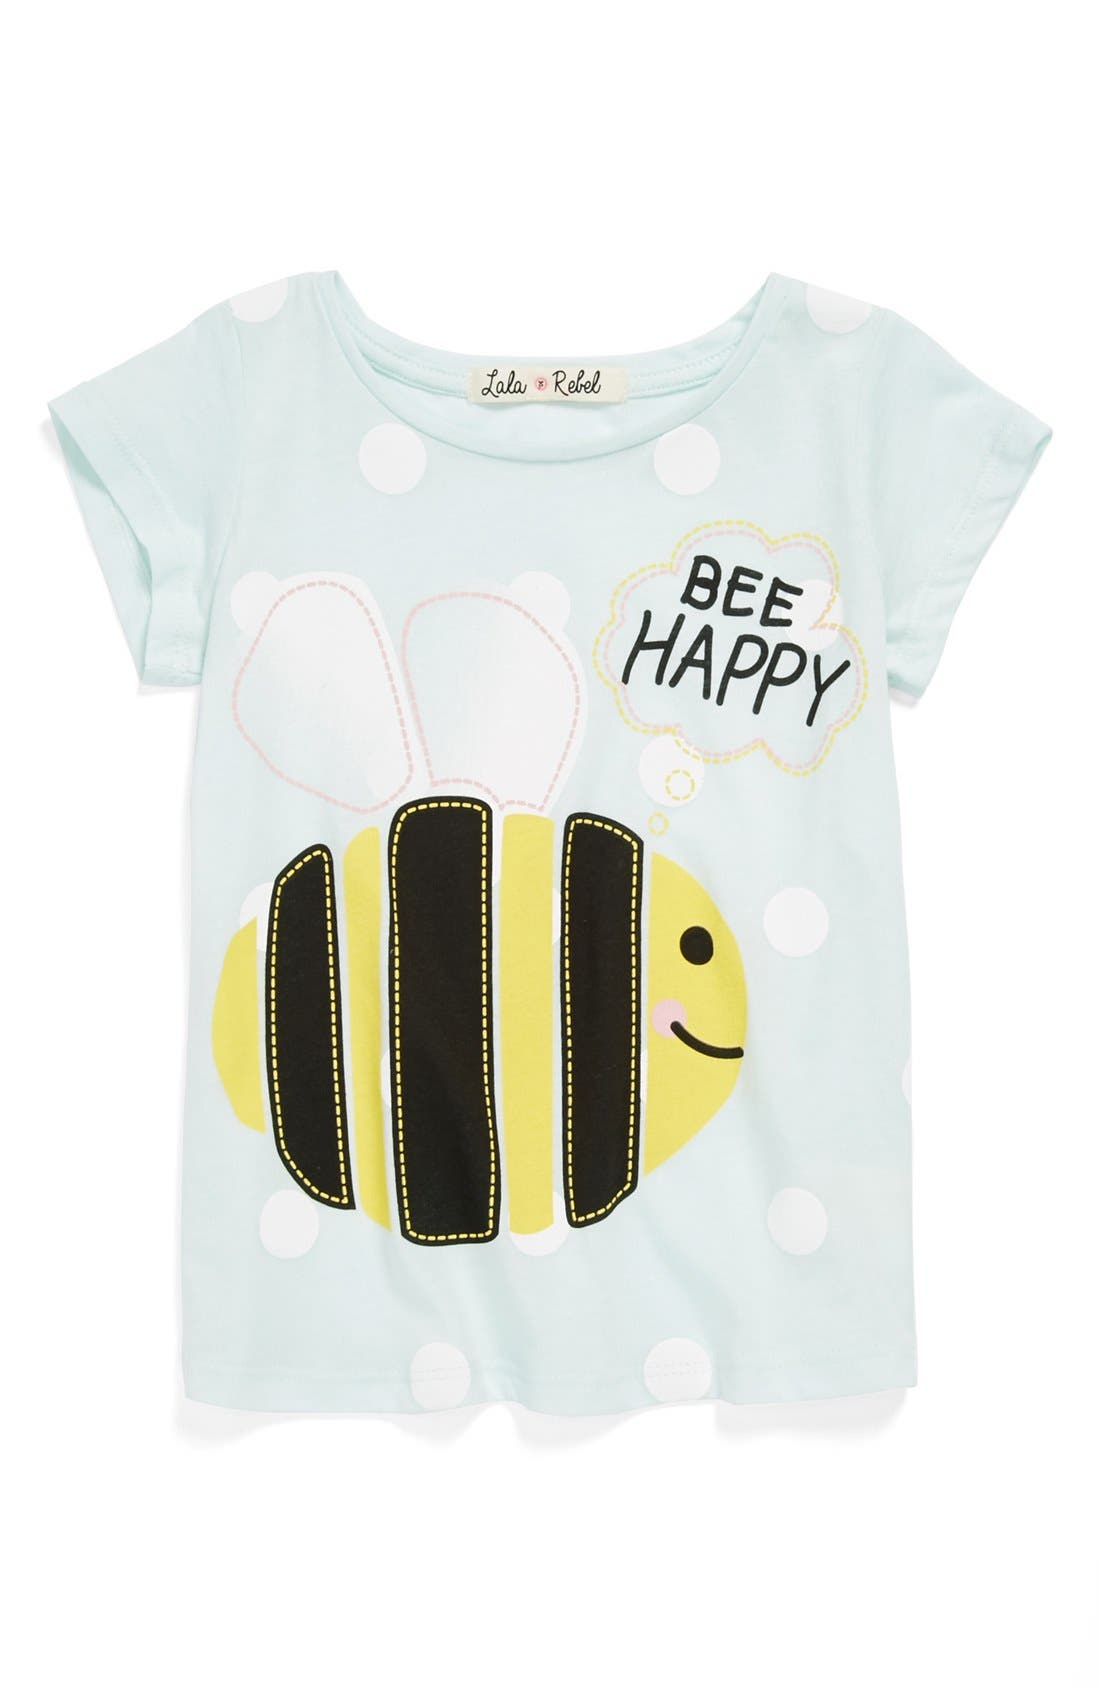 Main Image - Lala Rebel 'Bee Happy' Tee (Toddler Girls)